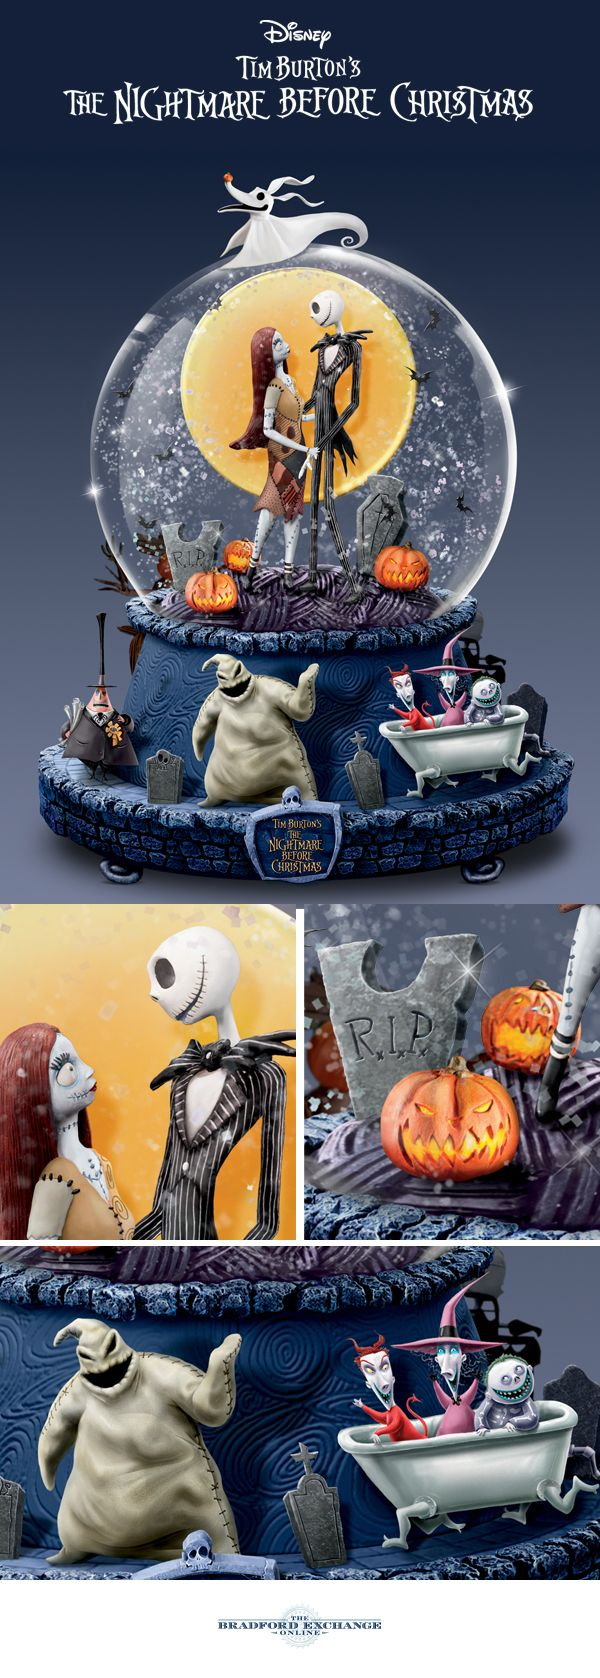 """When Jack and Sally confessed their love for each other, it was a movie moment we wanted to hold on to forever. Now you can with this Nightmare Before Christmas glitter globe, perfectly capturing the beloved characters' iconic scene, amidst glitter and black bat swirls, a rotating base and the movie's famous """"Overture"""" tune providing the soundtrack."""